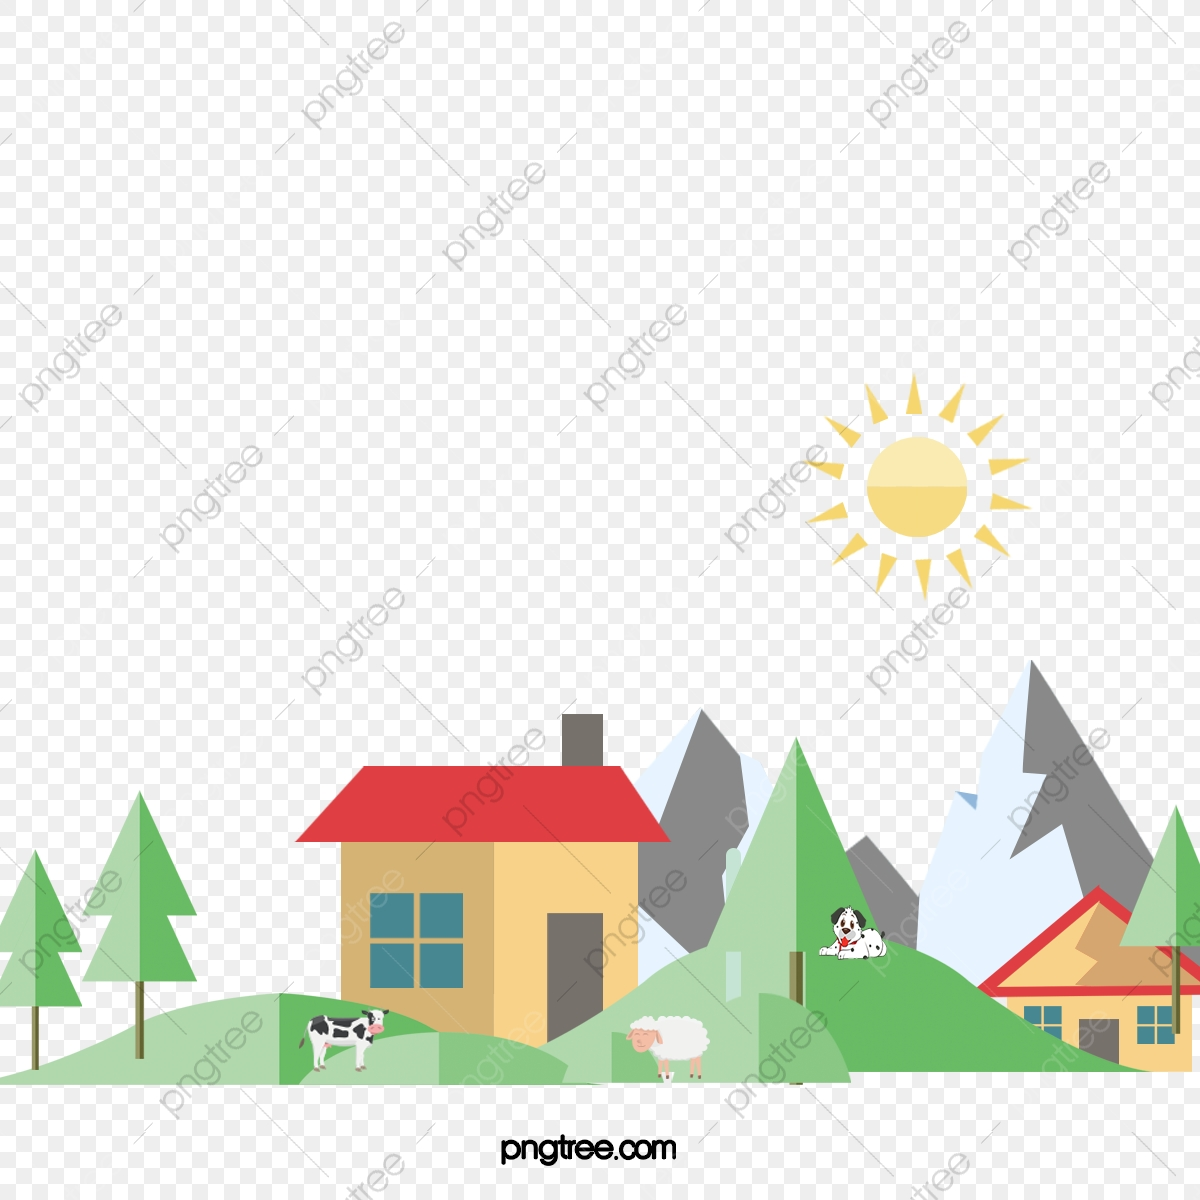 house vector png free house logo apartment house house things vector images pngtree https pngtree com freepng png village house vector material 2121667 html